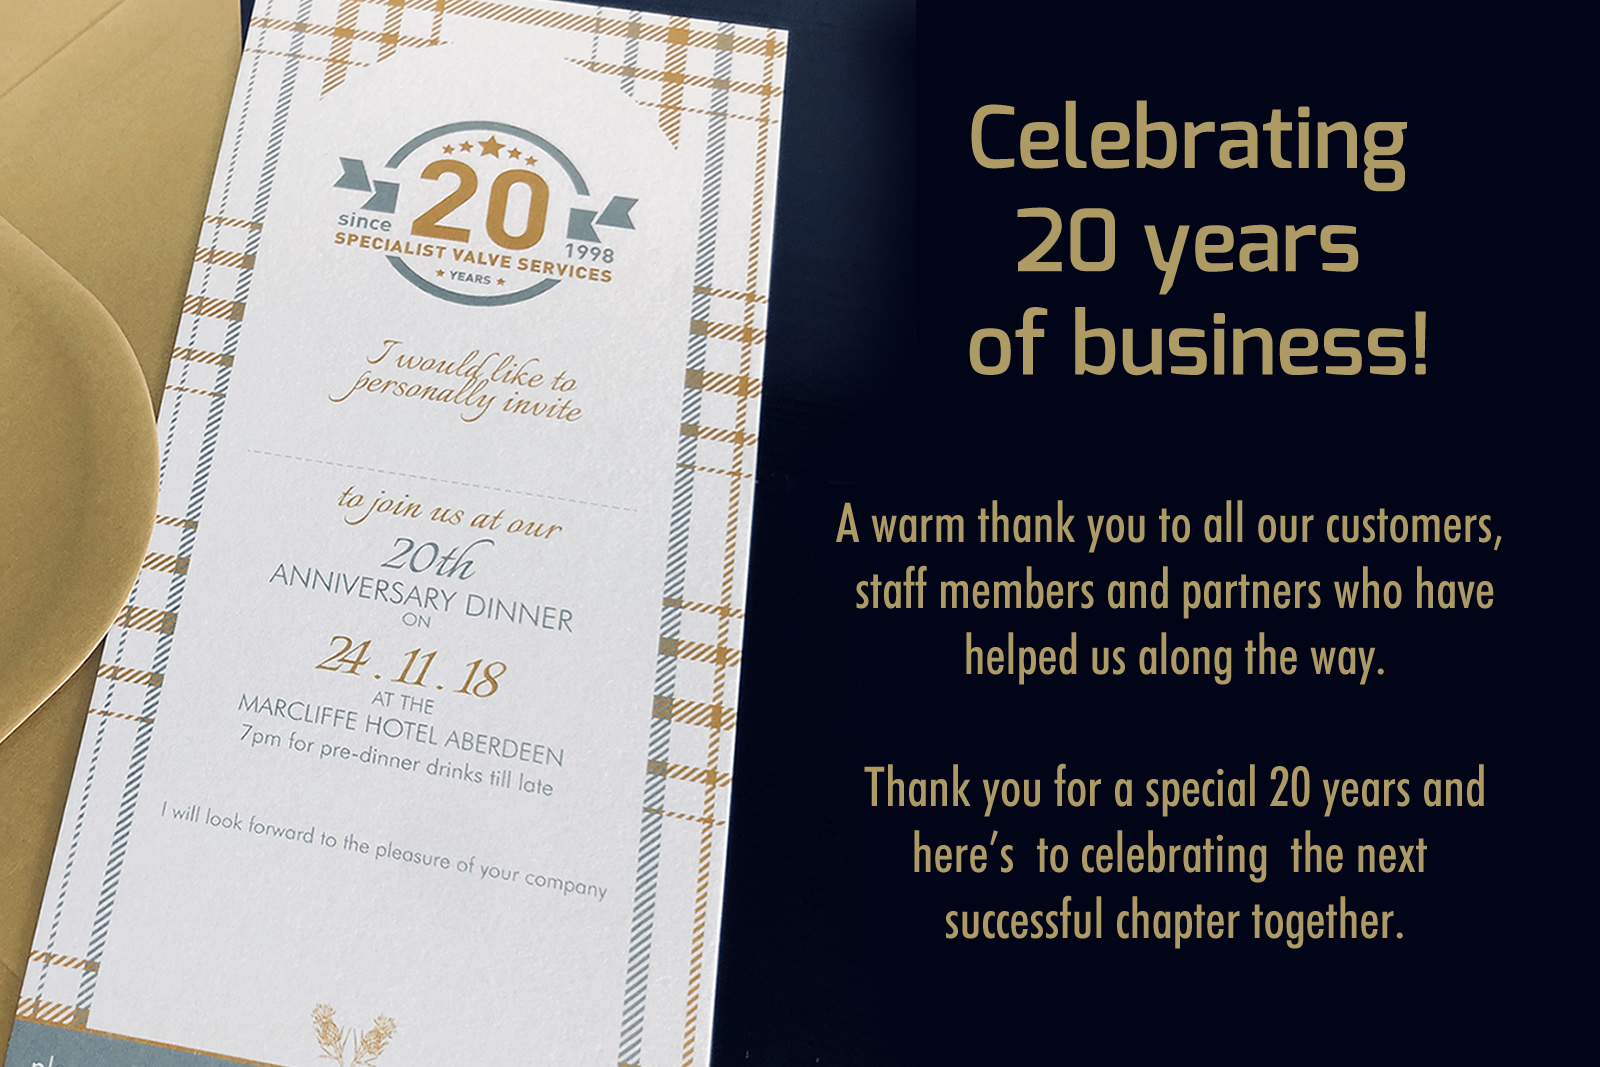 SVS CELEBRATE 20 YEARS OF BUSINESS